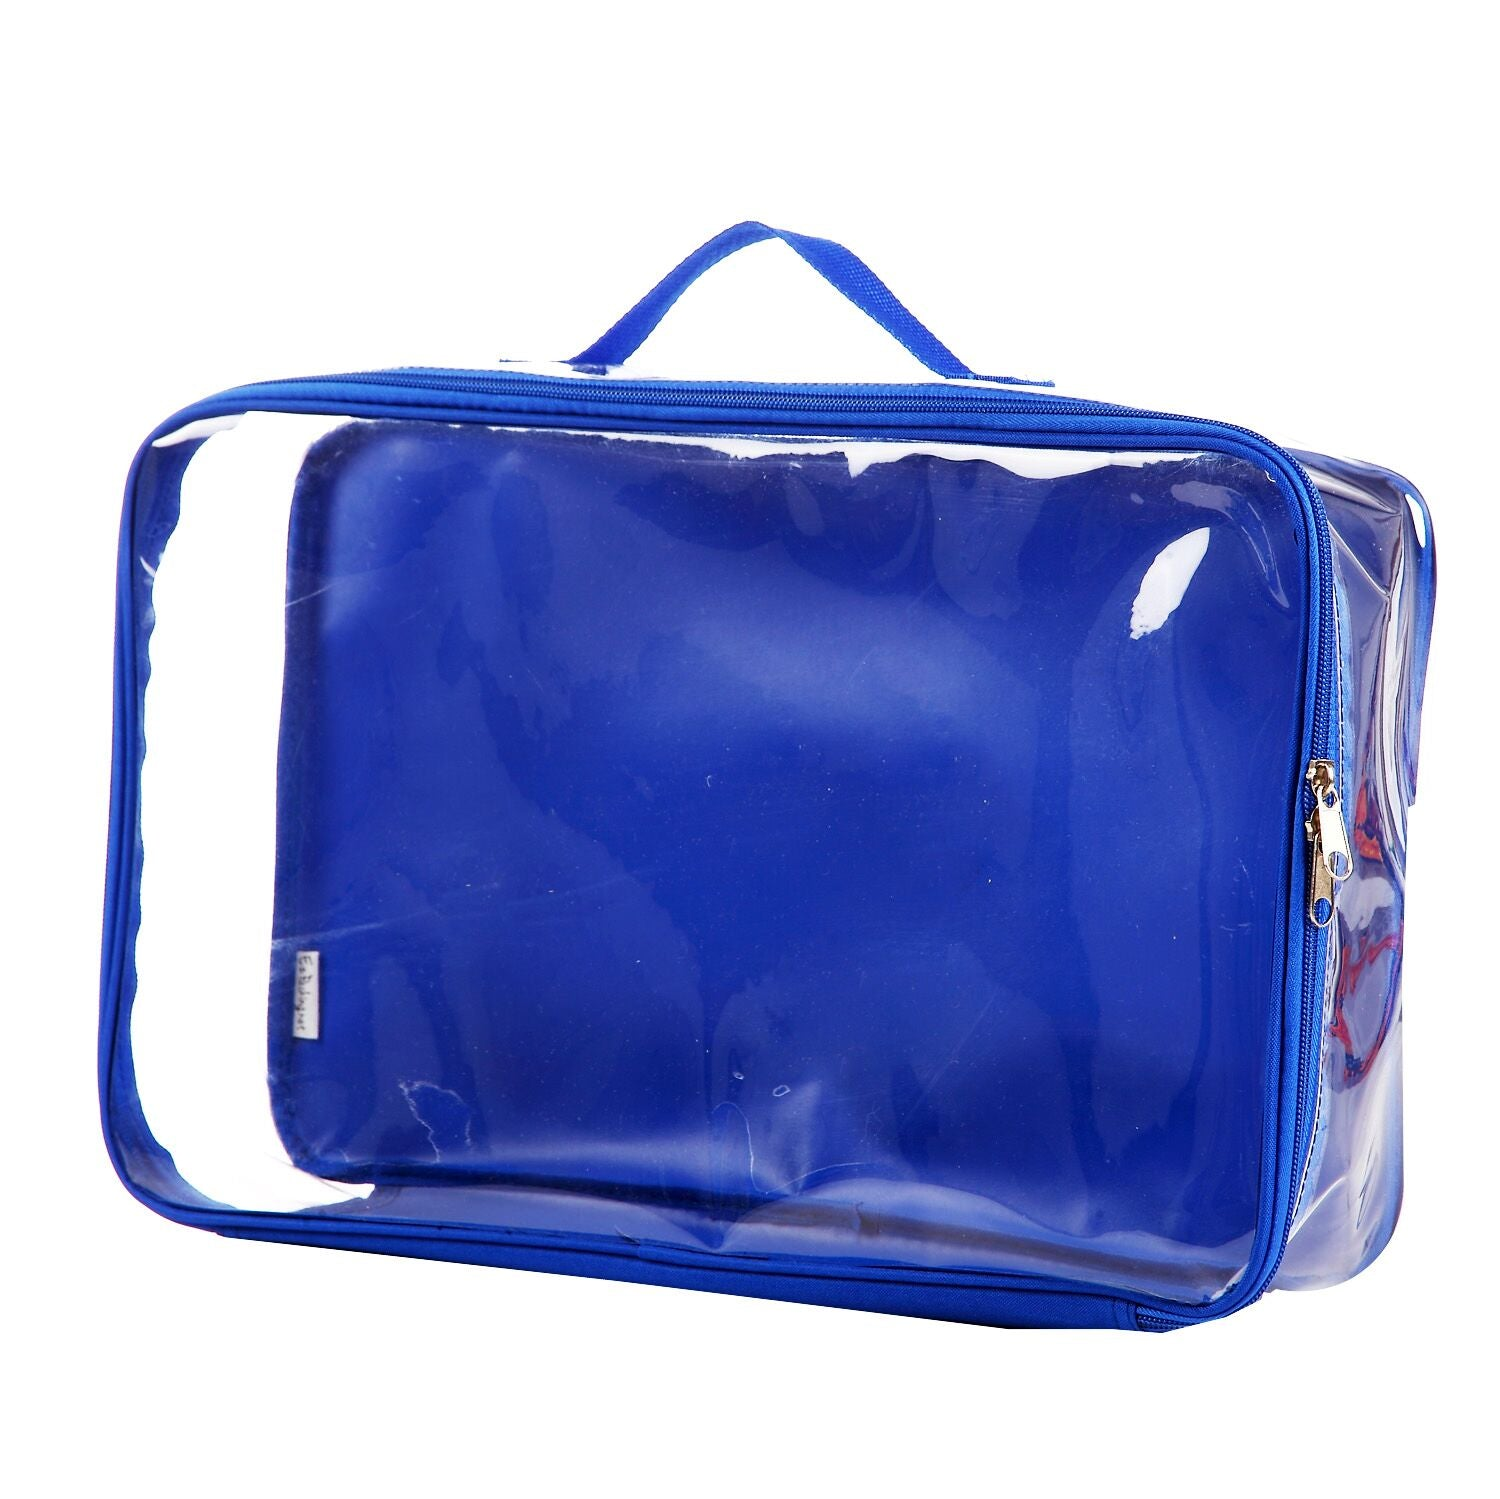 Ezpacking blue large packing cube